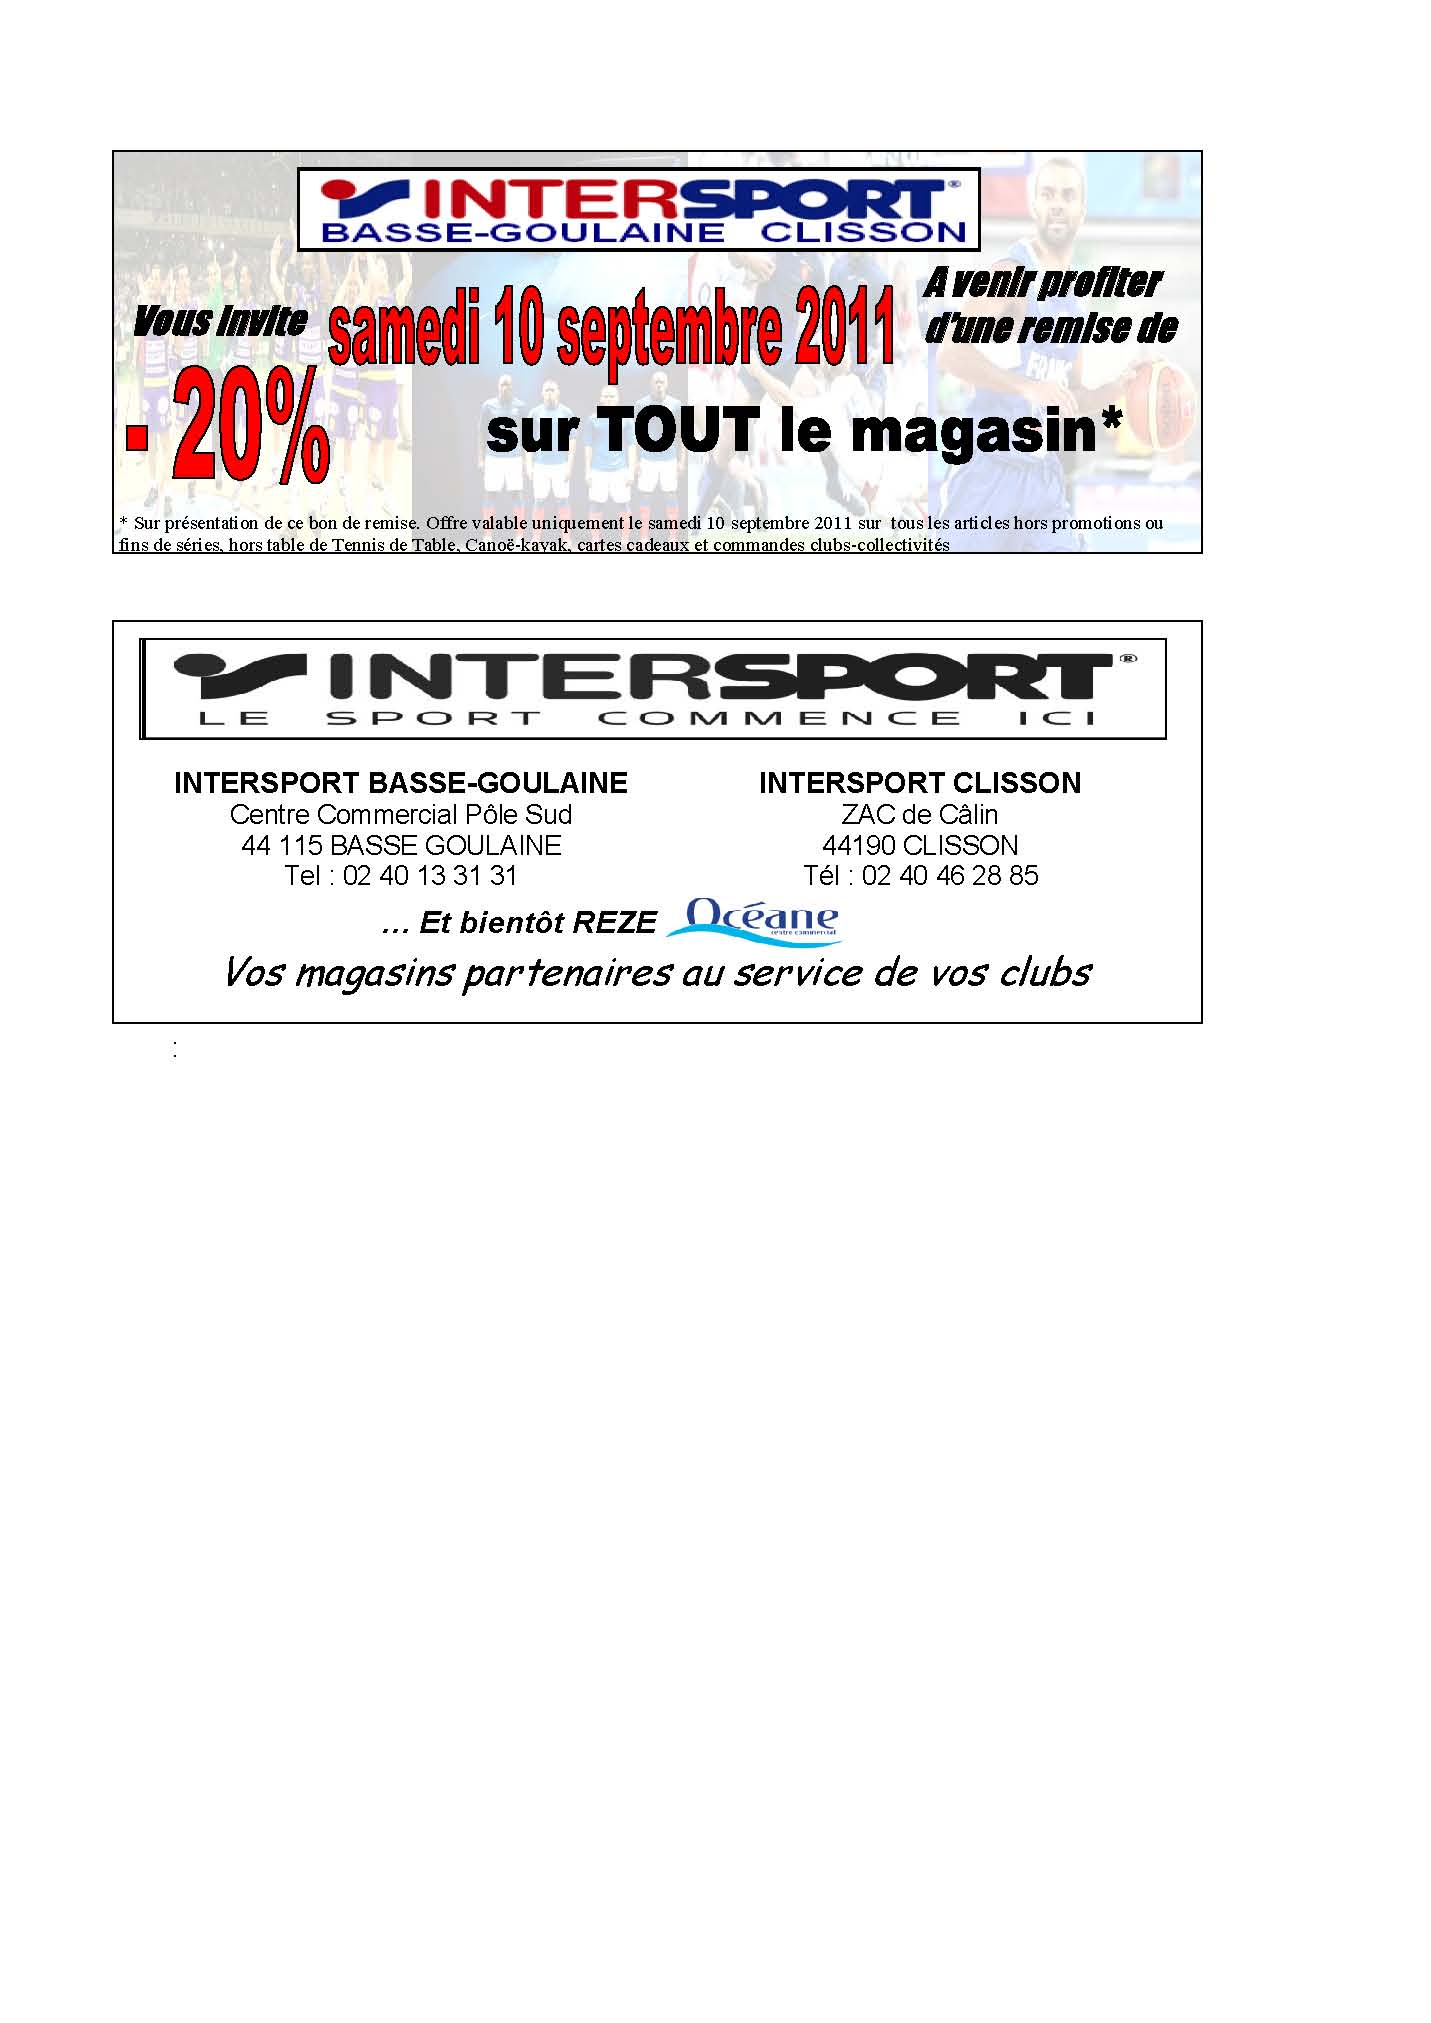 Coupons reductions magasins